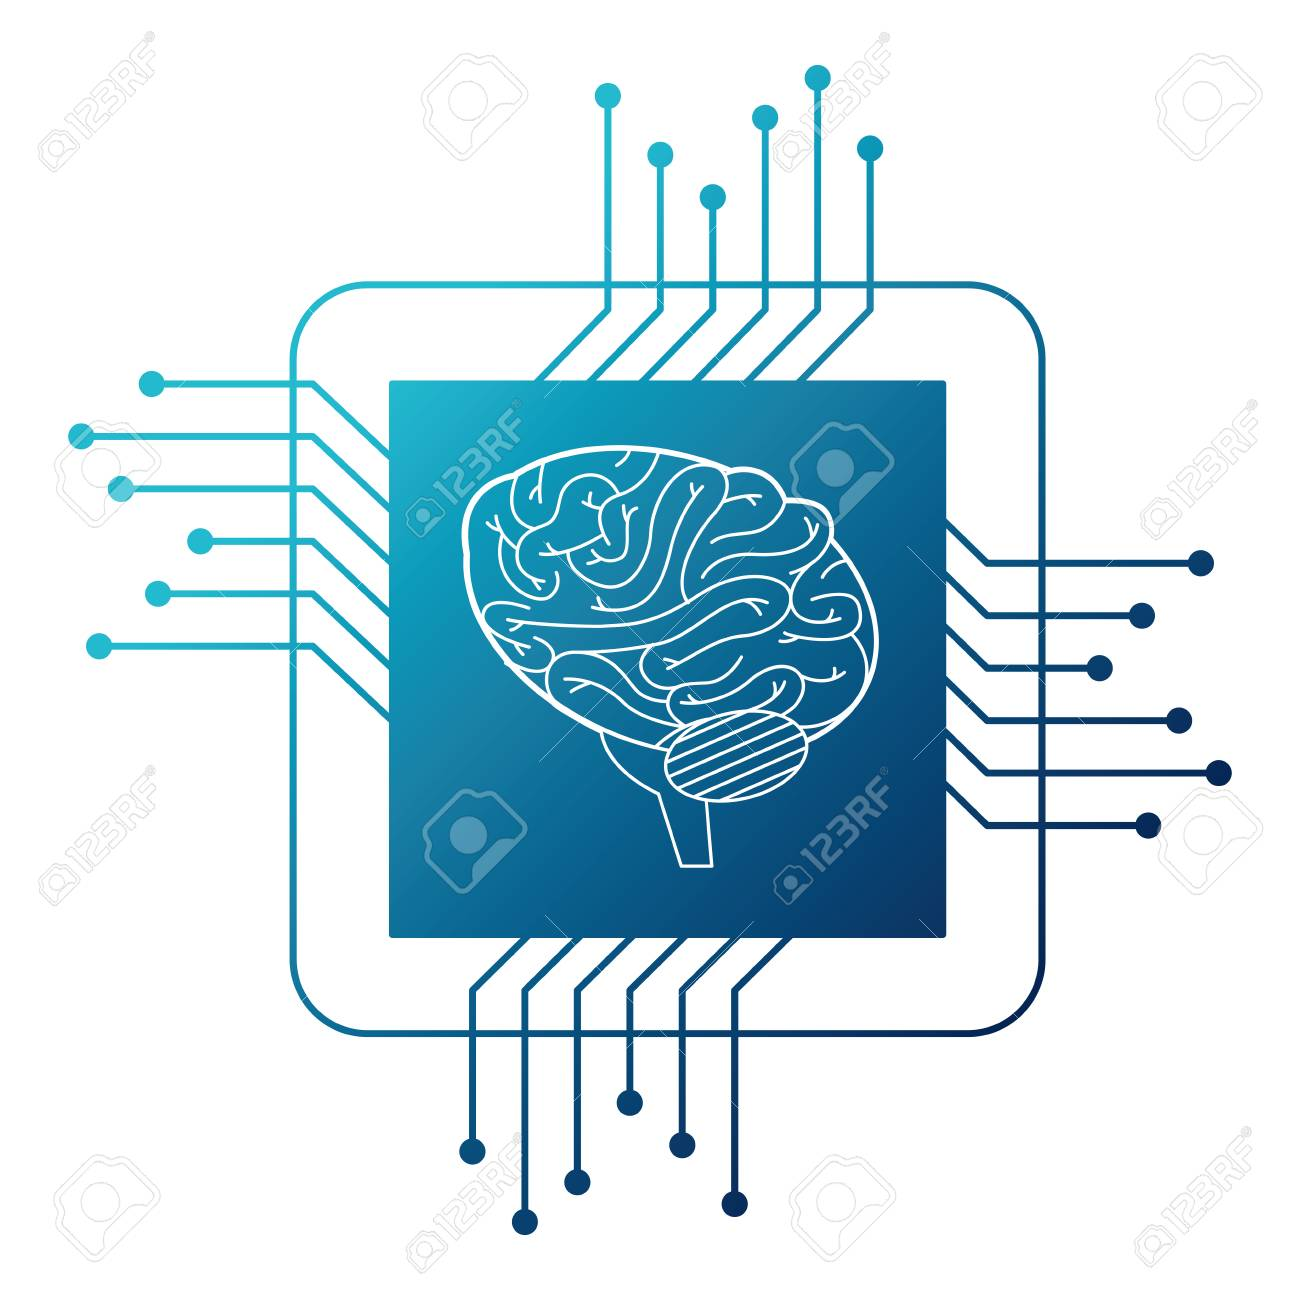 Processor Circuit With Brain Vector Illustration Design Royalty Free Diagram Stock 93119364